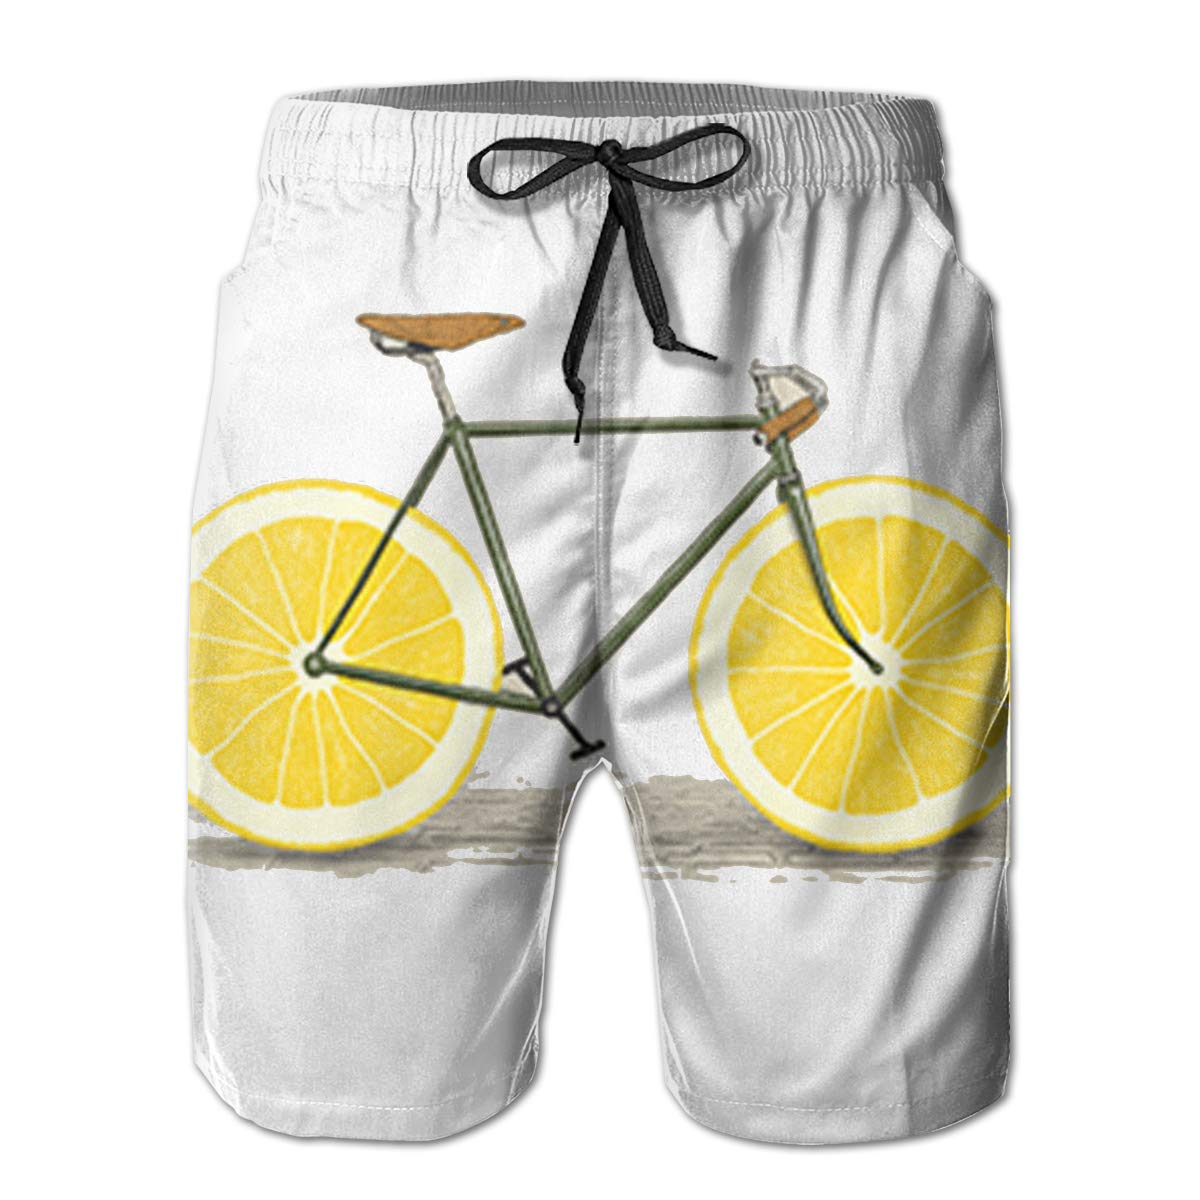 You Know And Good Zest Mens Swim Trunks Bathing Suit Beach Shorts